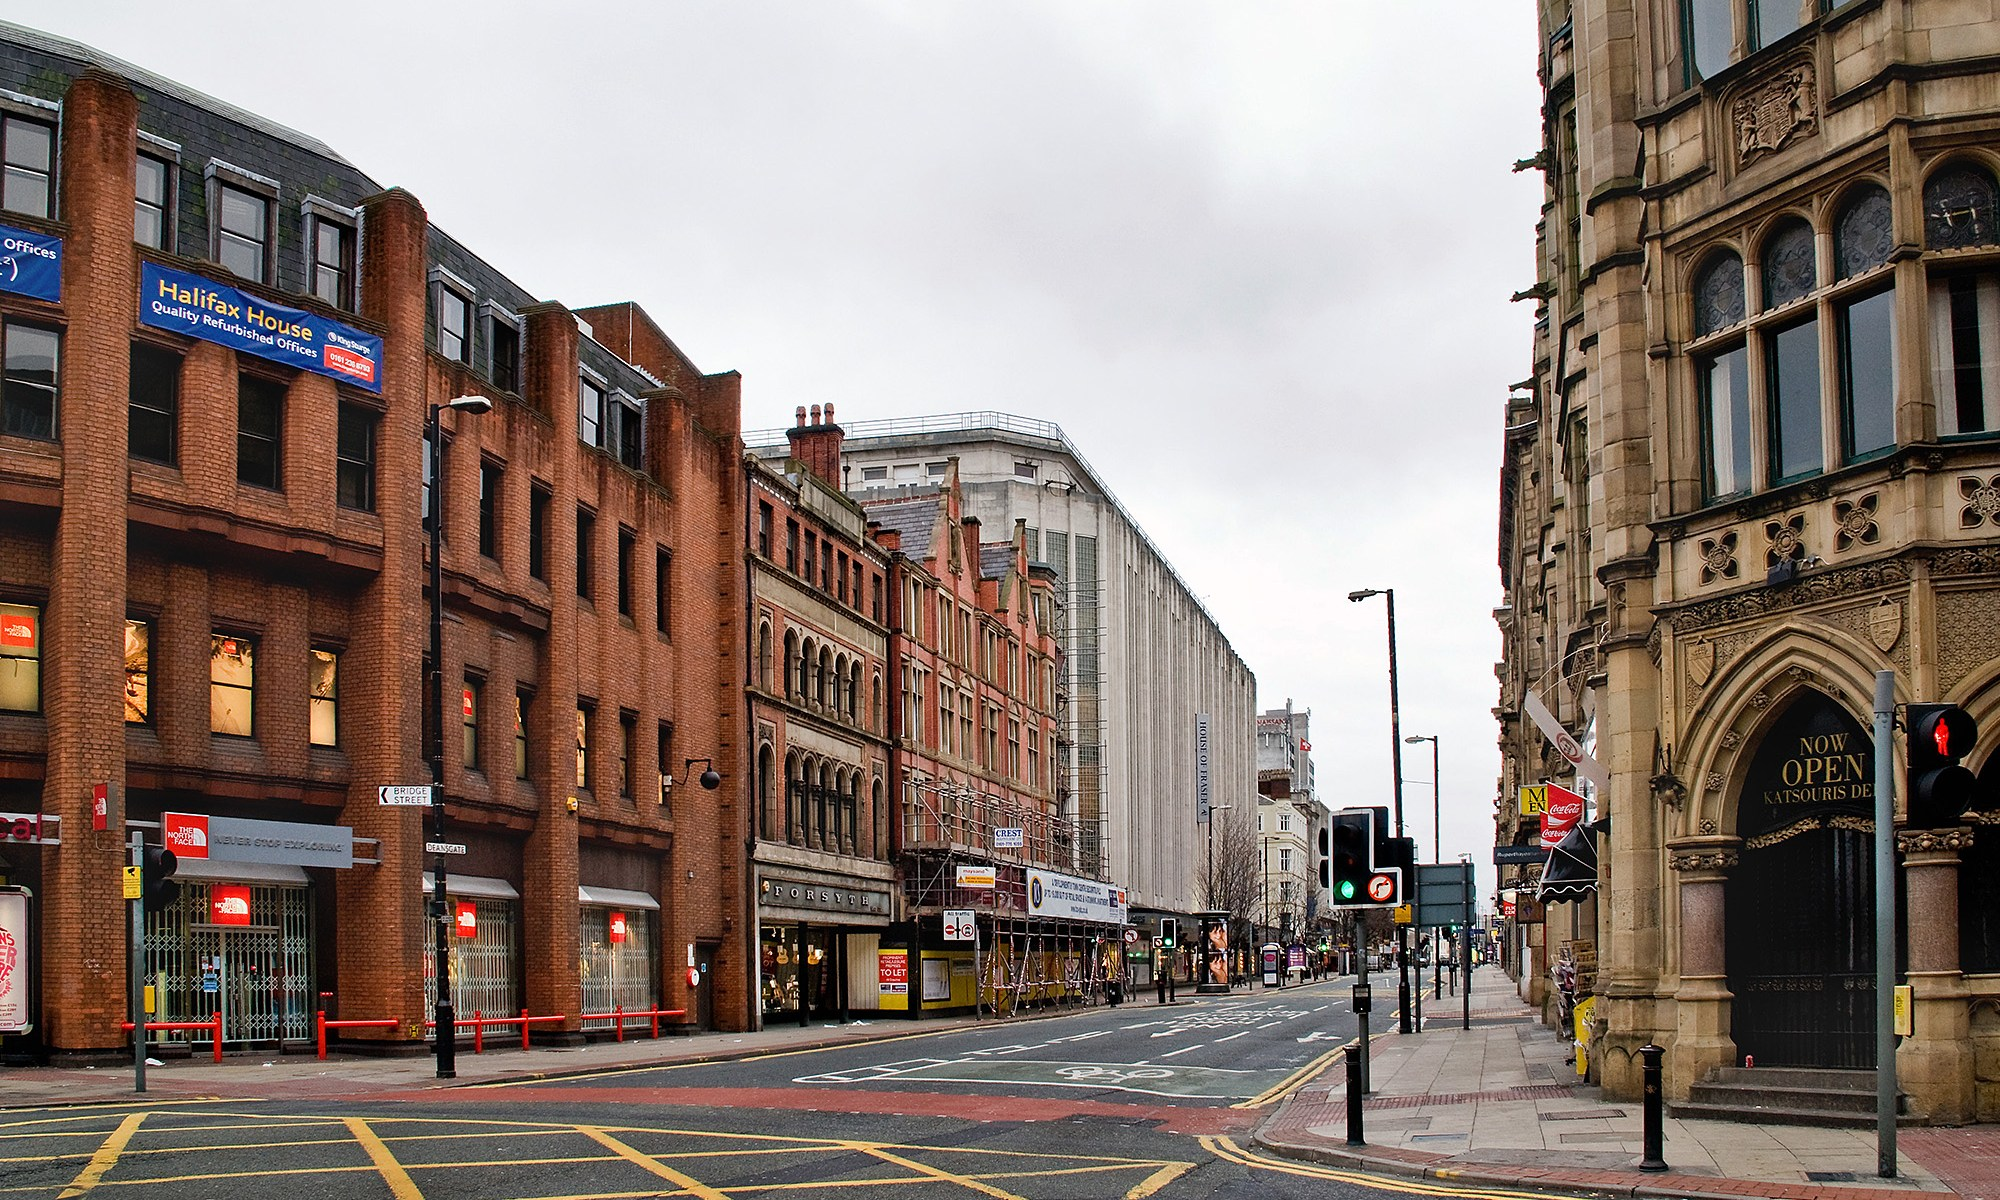 Deansgate towards Kendals, Manchester